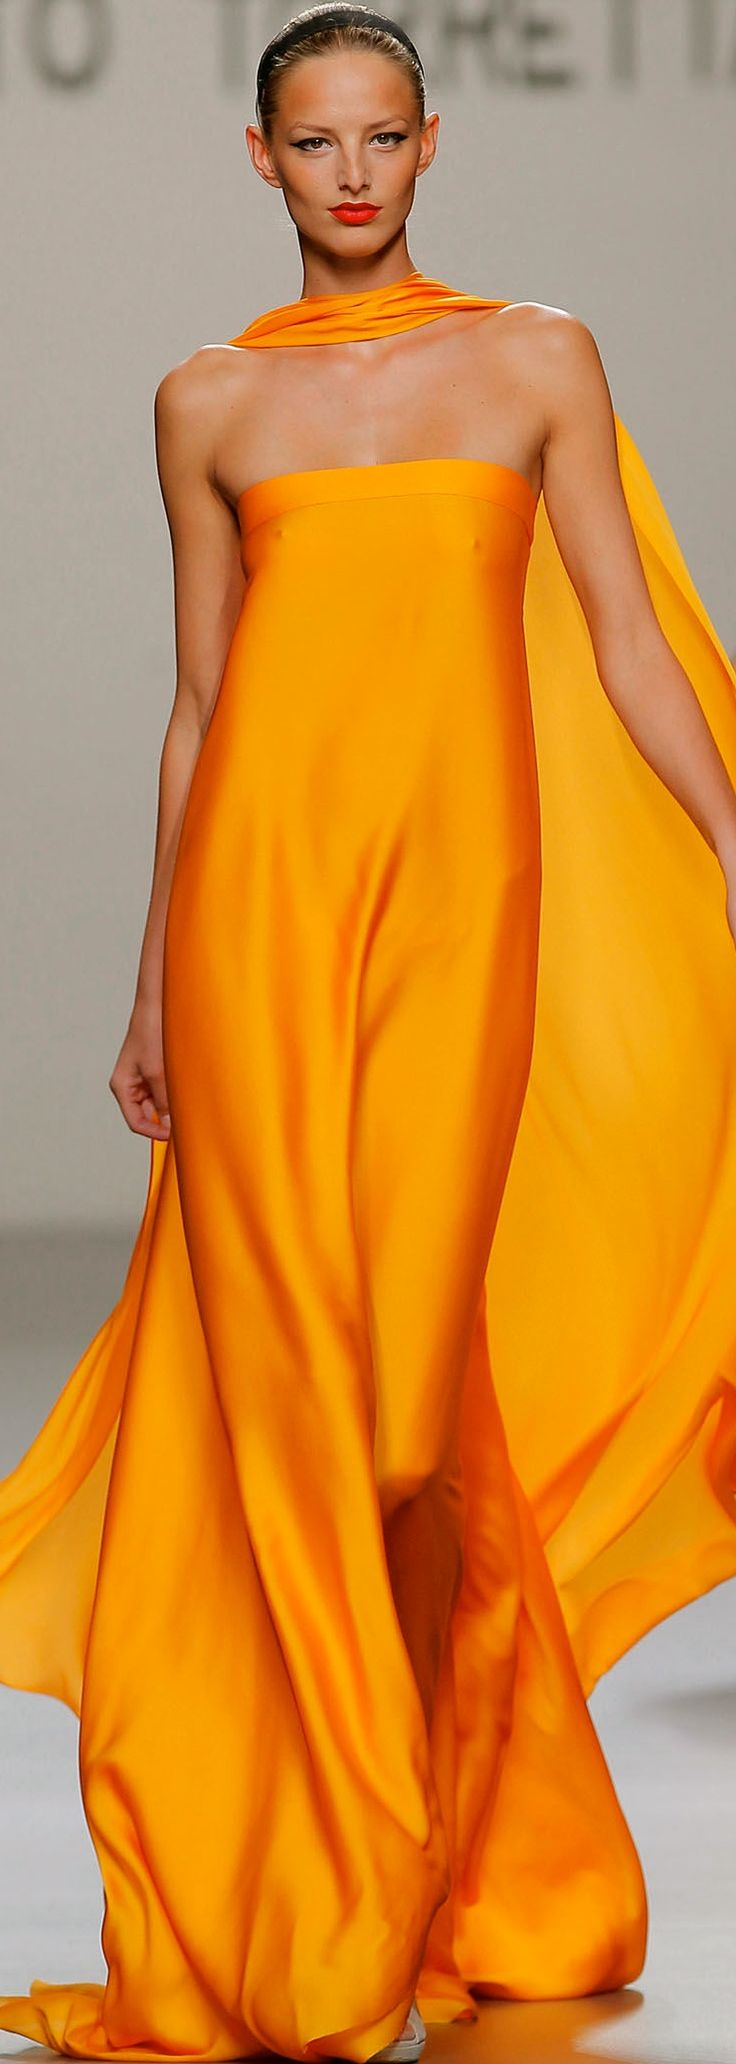 Beautiful gown. BUT, people getting her all ready to head out on the run way should make sure everything is lined up! Just sayin'. It's something I just notice. #Orange #Chic #Style #Summer #Beautiful #WednesdayWant